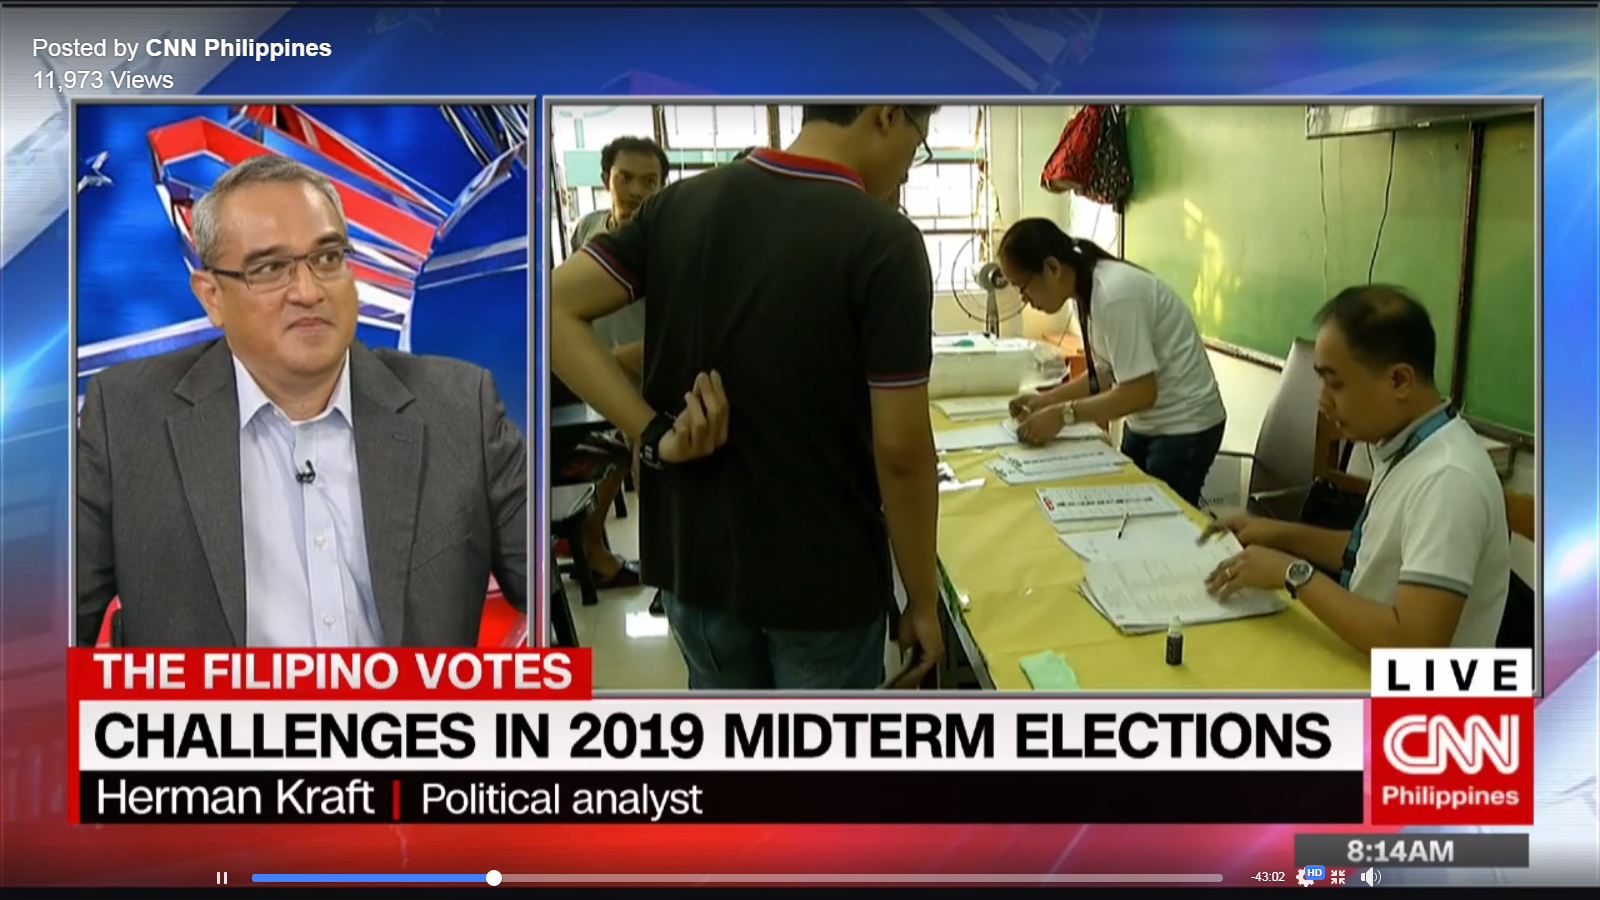 CNN Philippines: Assoc. Prof. Herman Kraft